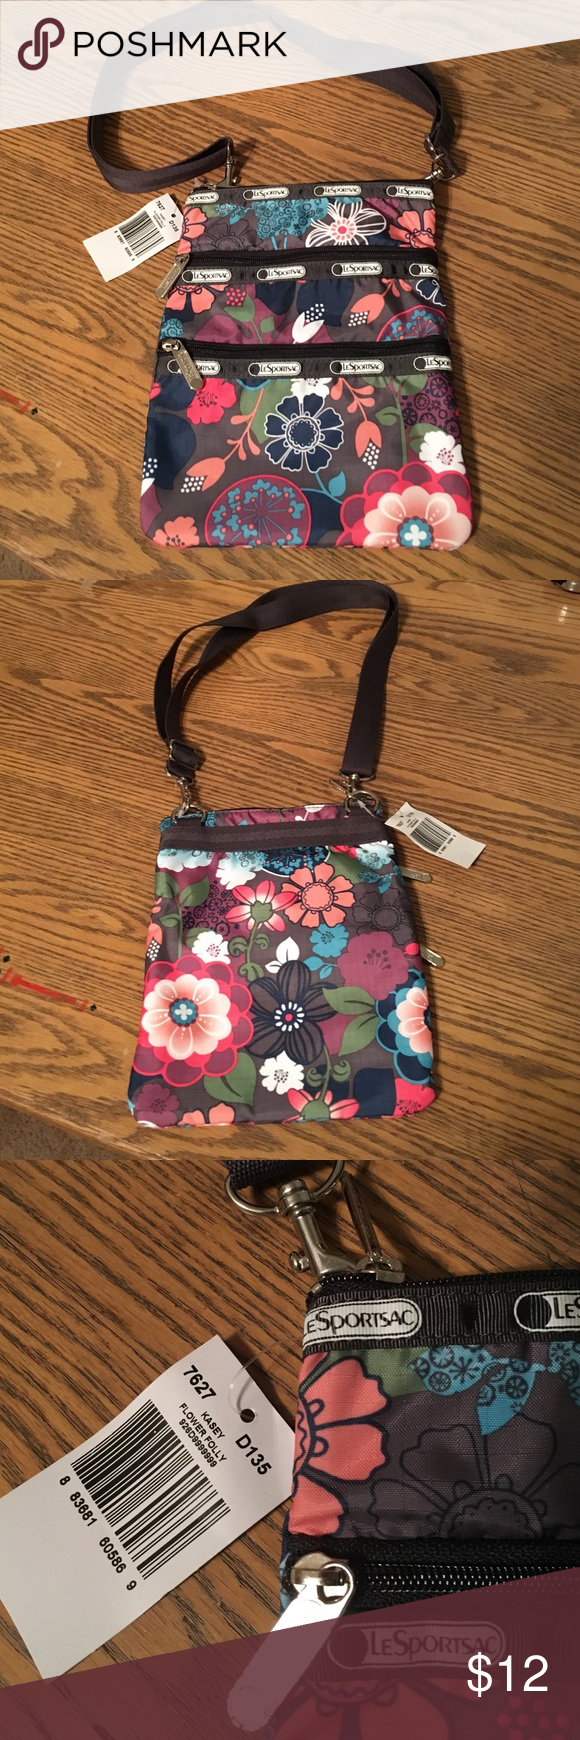 """LeSportsac Kasey Crossbody bag NWT LeSportsac Kasey Crossbody bag. Flower Folly print, 1 main zipper compartment and 2 outside zipper pockets, removable adjustable strap. Great for the essentials! 9.5H x 7.5W x 1/2""""D LeSportsac Bags Crossbody Bags"""